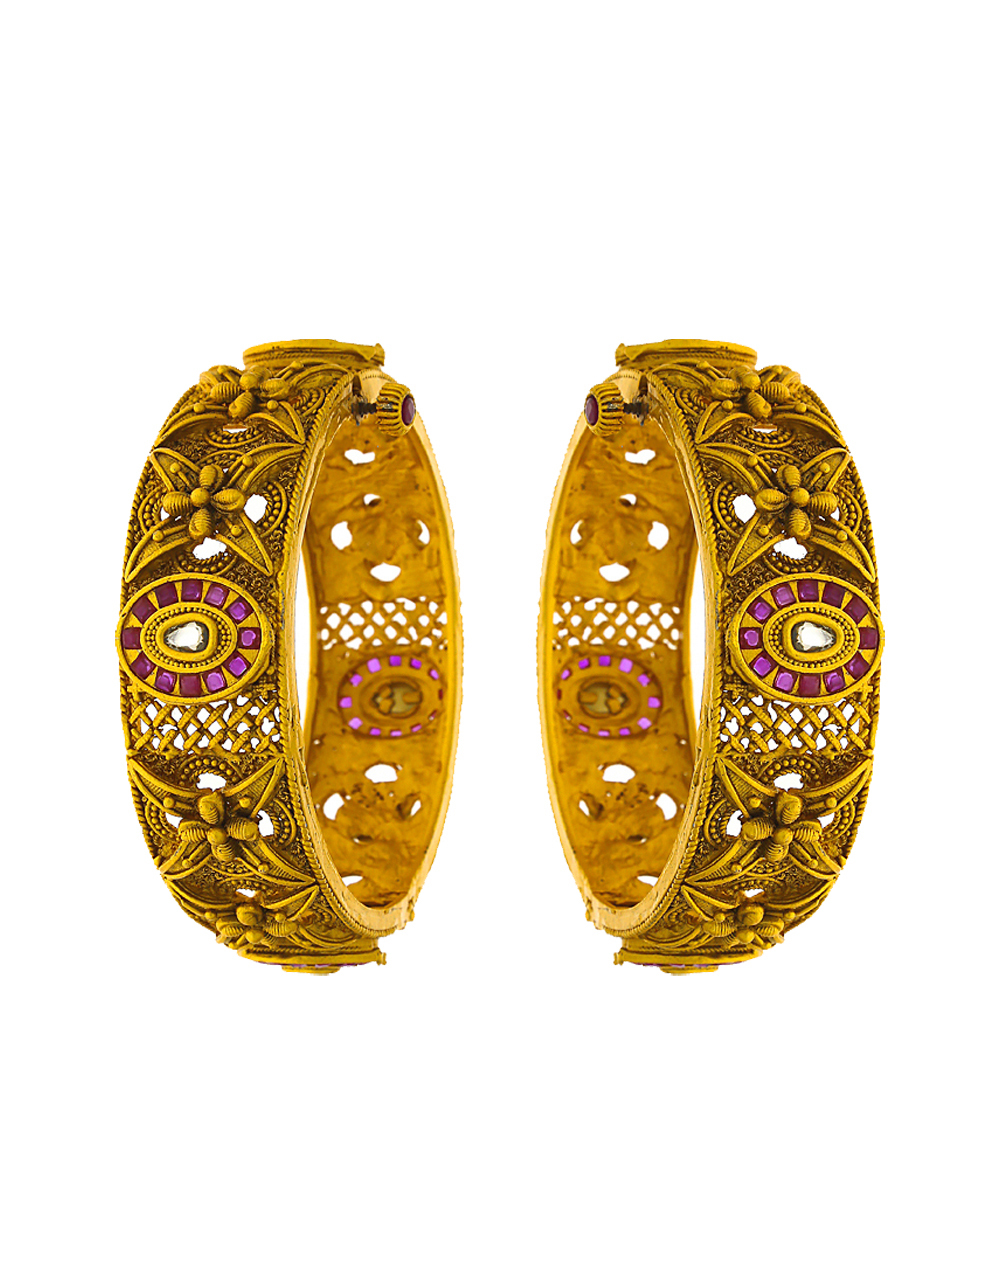 Round shape designer bangles studded with colourful stones for women